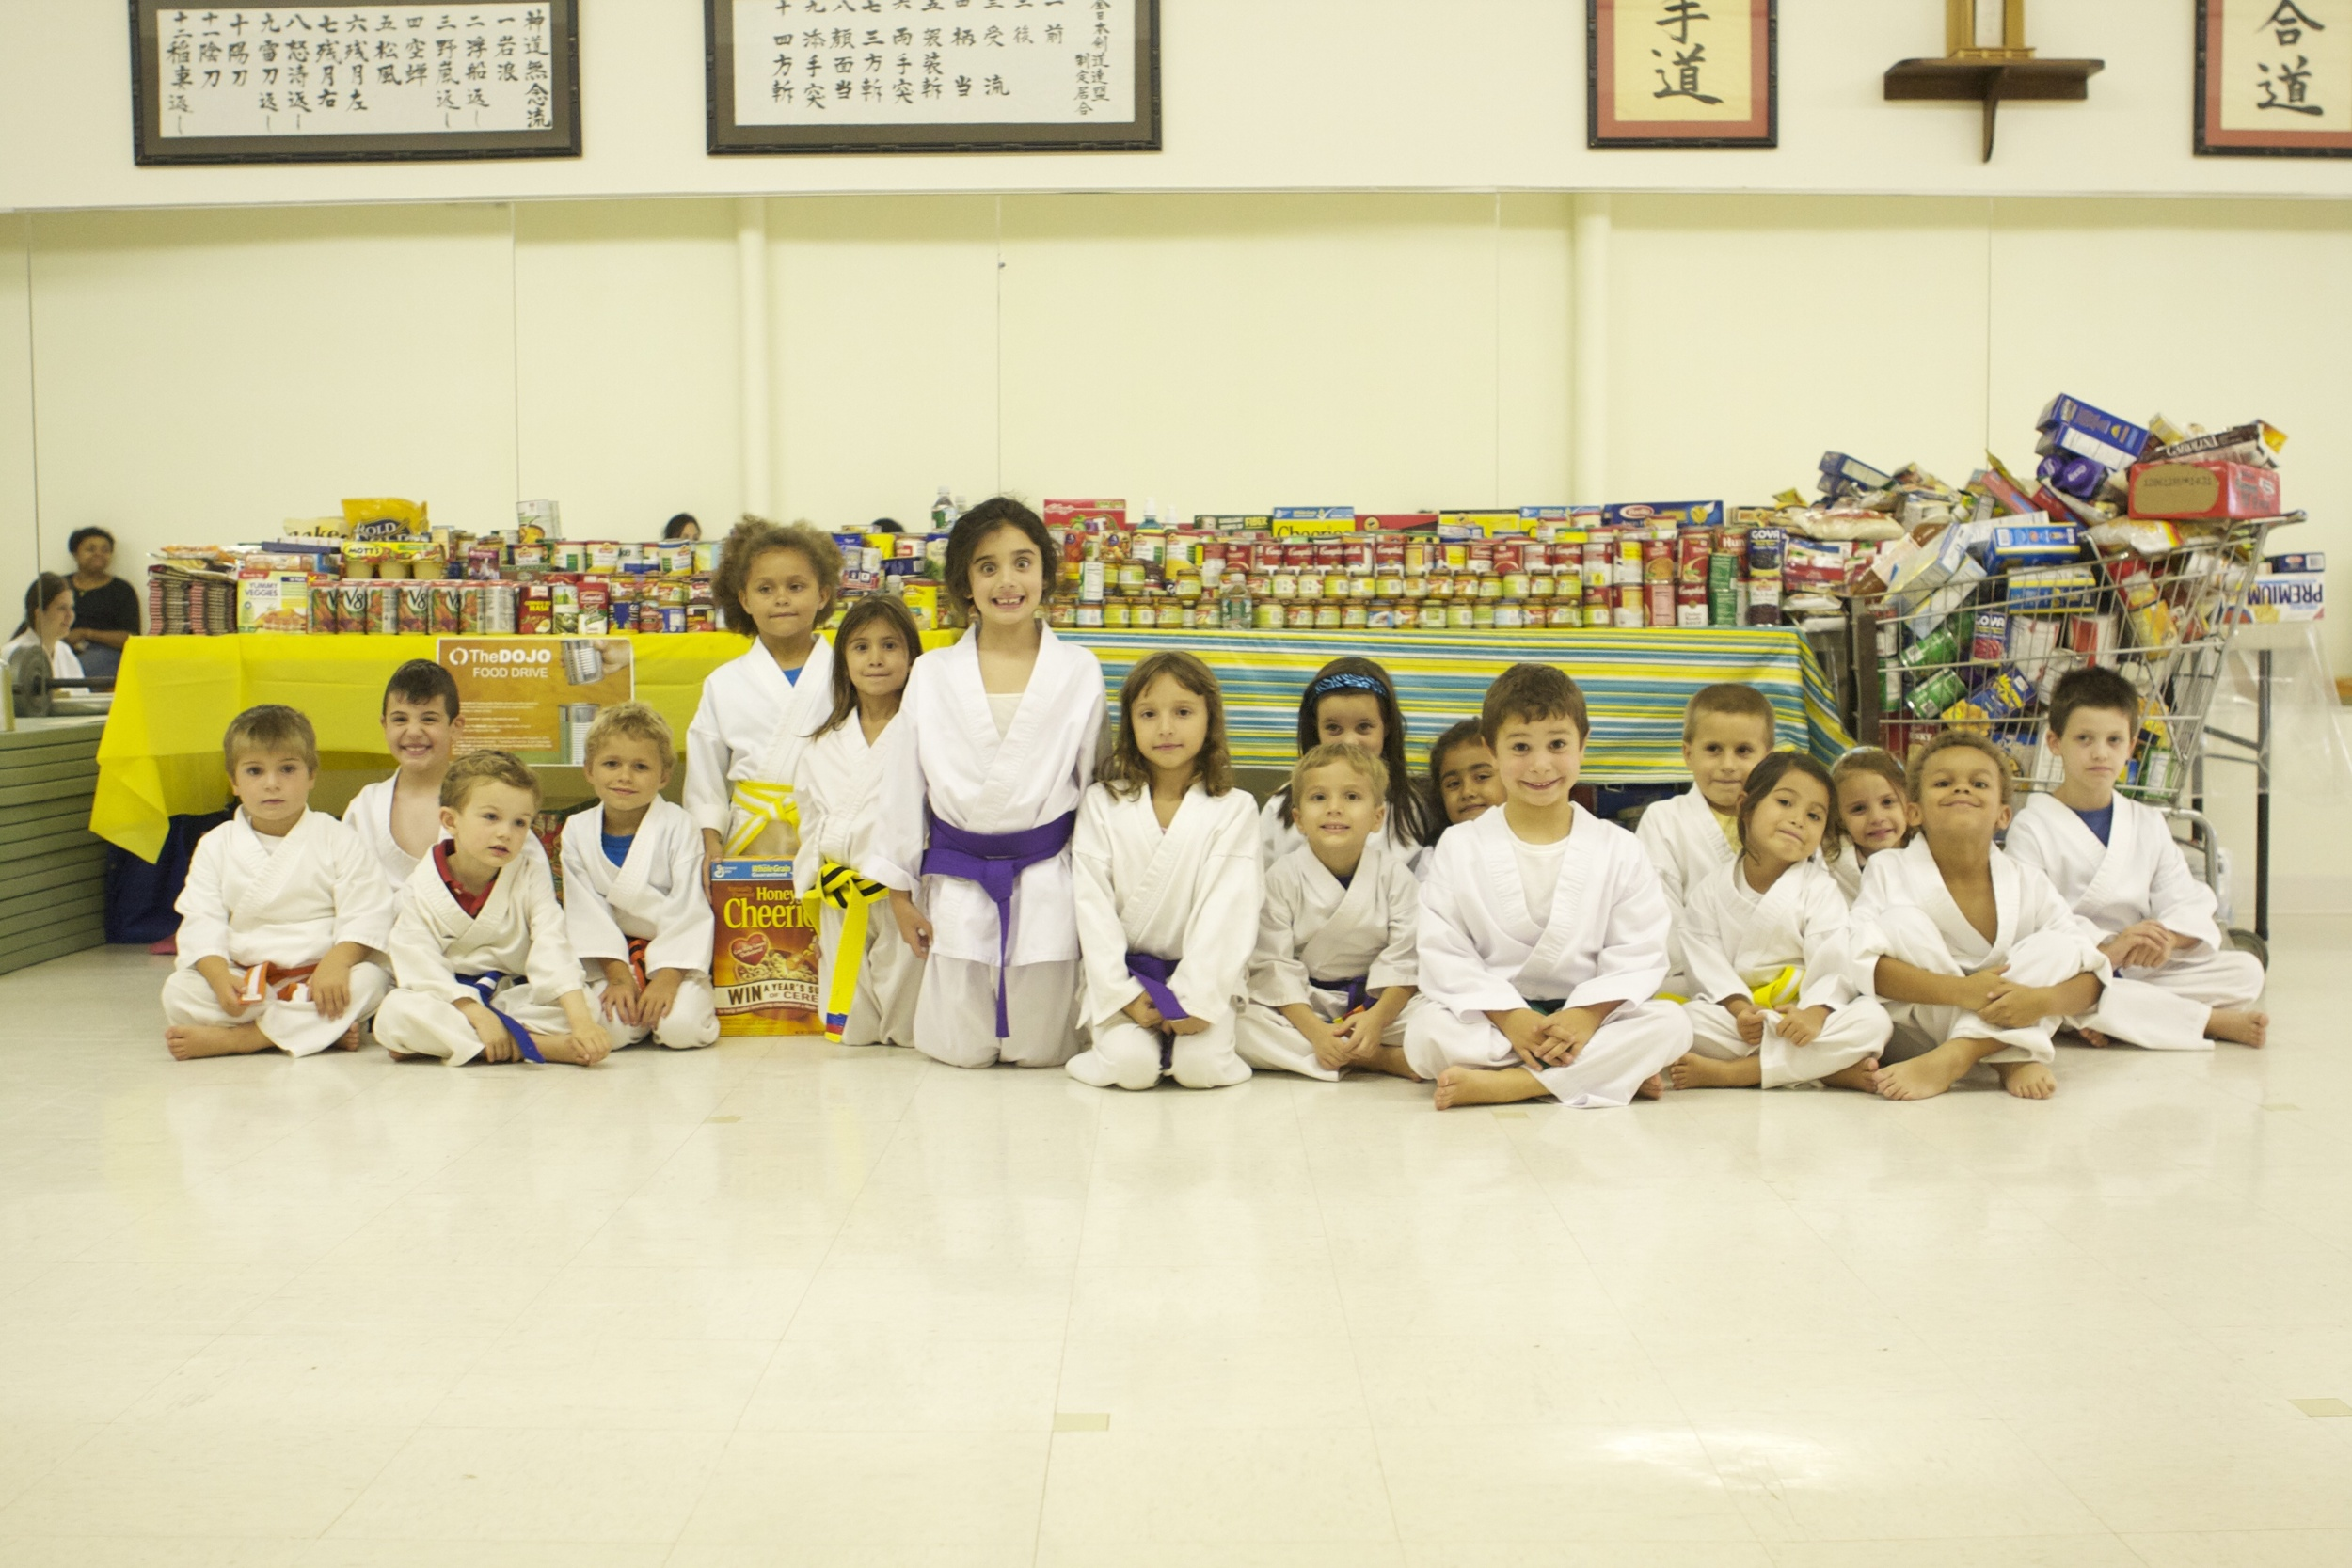 thedojo-food-drive-martial-arts-karate-kids-doing-community-service-in-rutherford-nj_14484461209_o.jpg